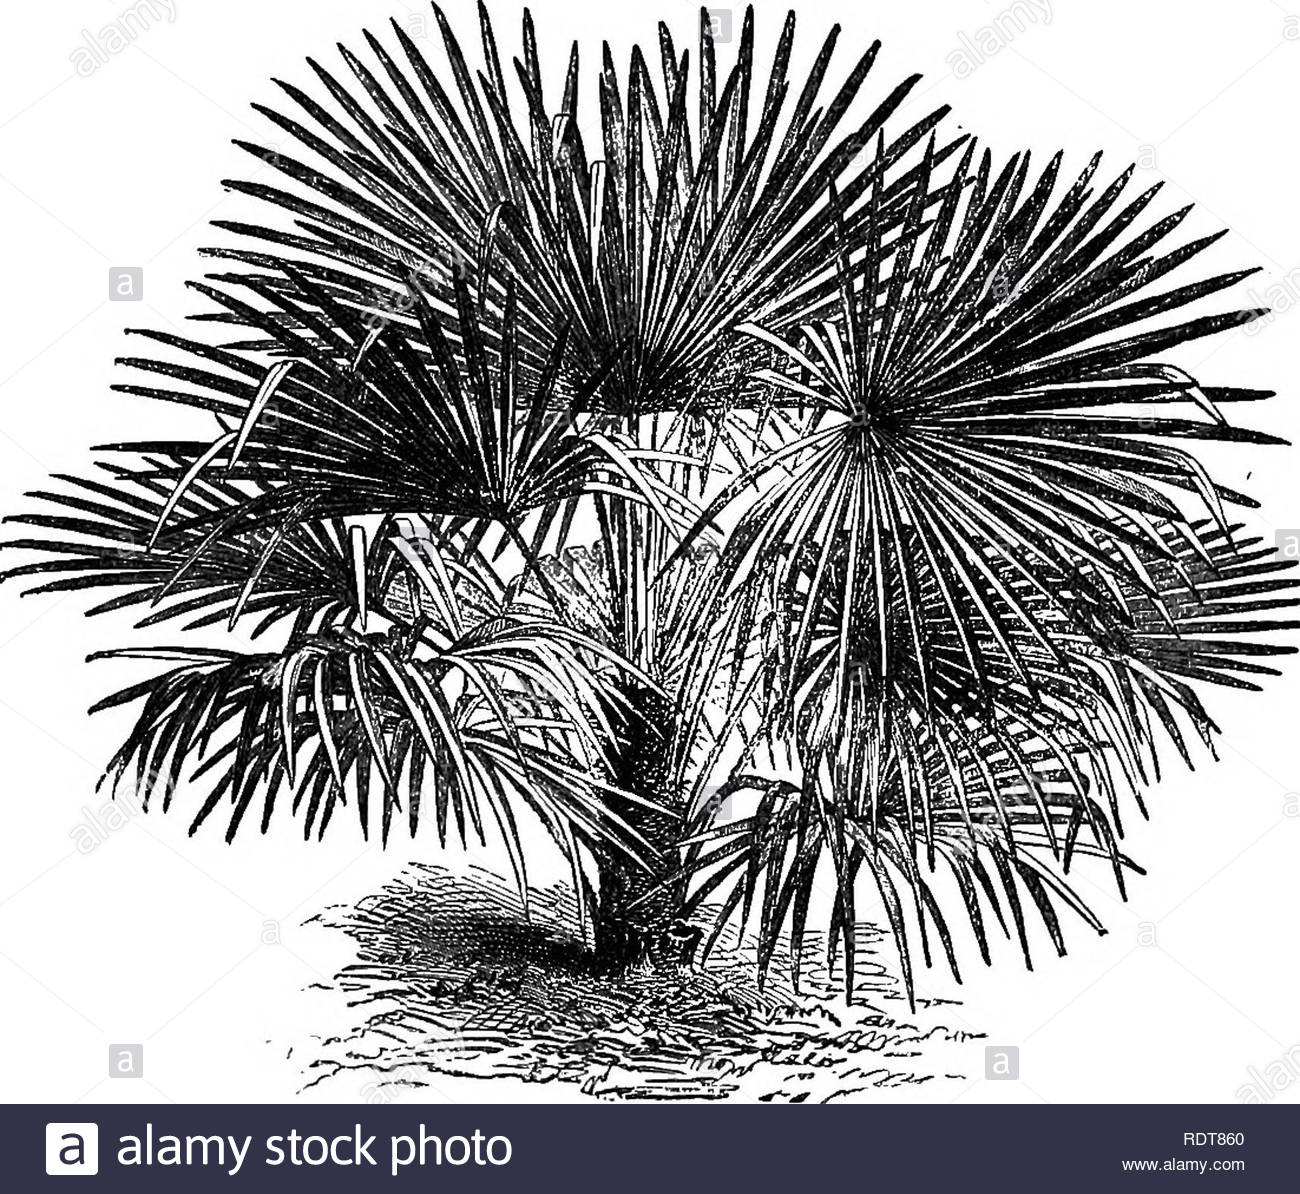 the parks promenades and gardens of paris described and considered in relation to the wants of our own cities and the public and private gardens gardens parks subtropical garden 219 colouring in the nursery department of the jardin des plantes and it doubtless will soon be seen everywhere with us cham2erops excelsait may not be generally known that this palm is perfectly hardy in this country a plant of it in her majestys gardens at osborne has attained a considerable height it is also out at kew though pro tected in winter on the water side of the high mound in fir so RDT860